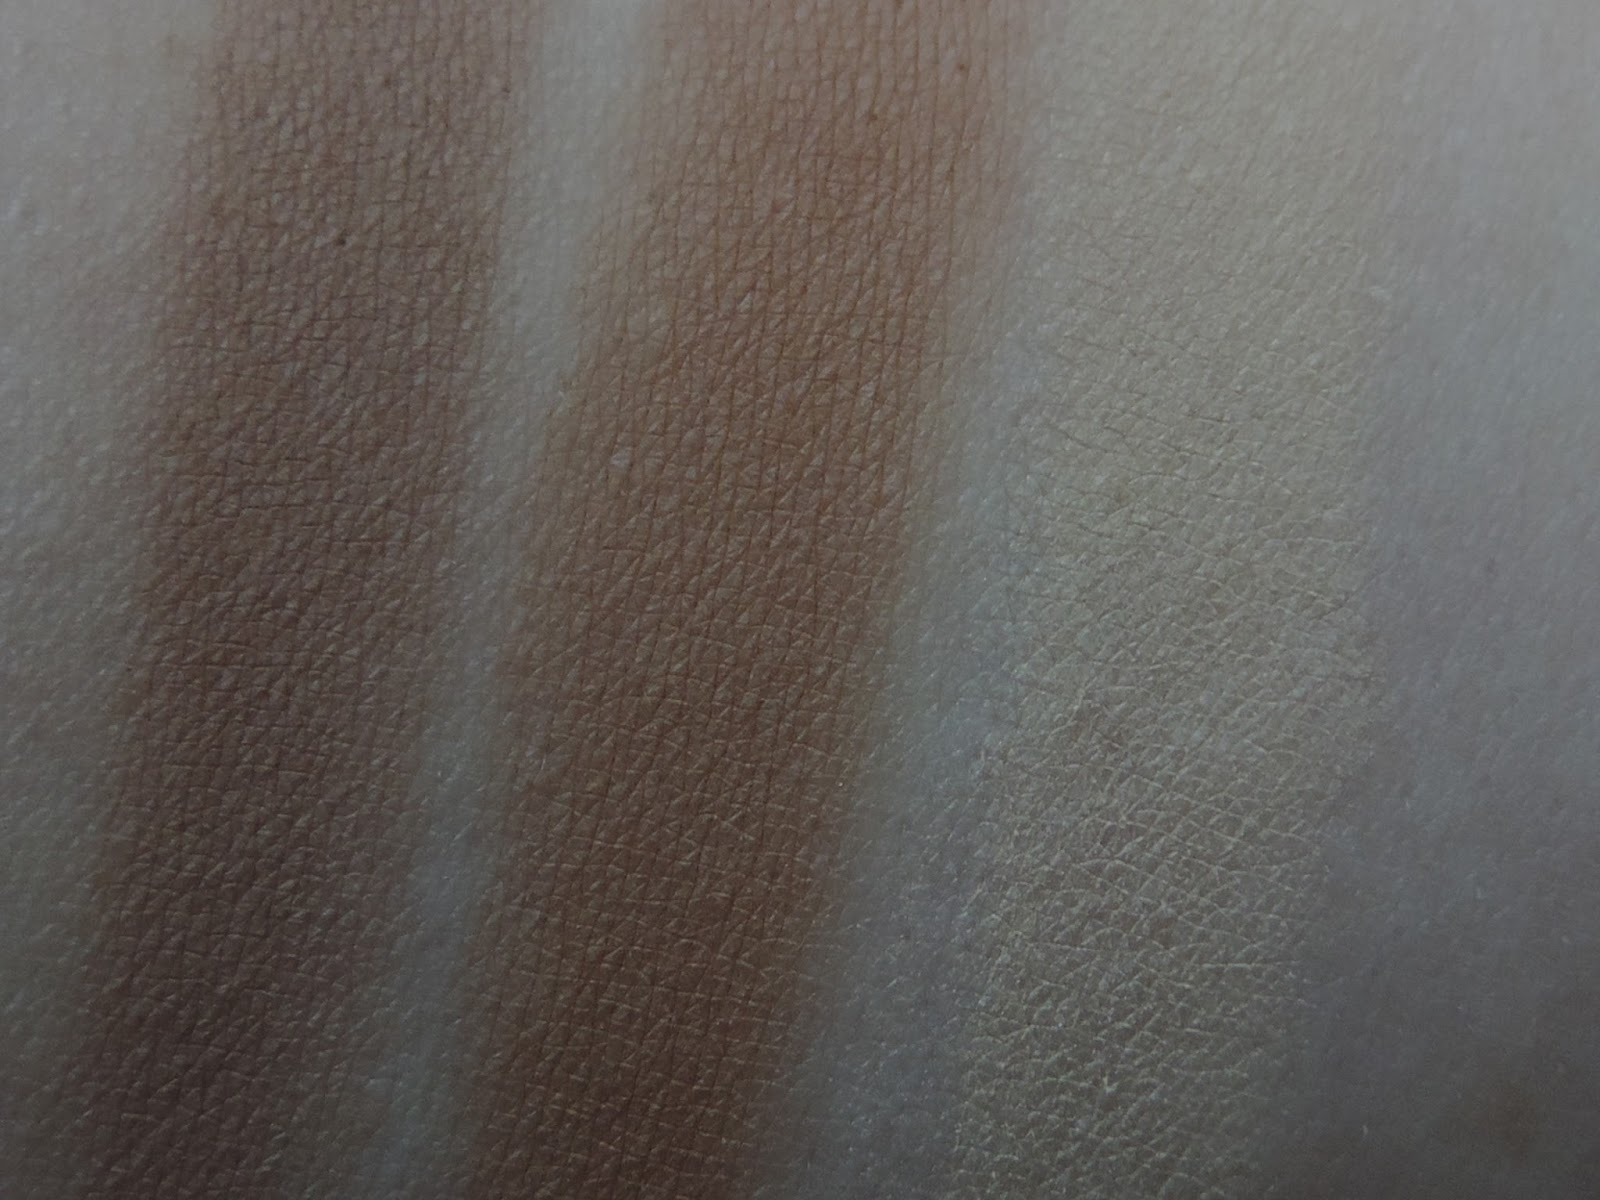 Swatches Smashbox Contour Kit (from left): Contour, Bronzer, Highlight